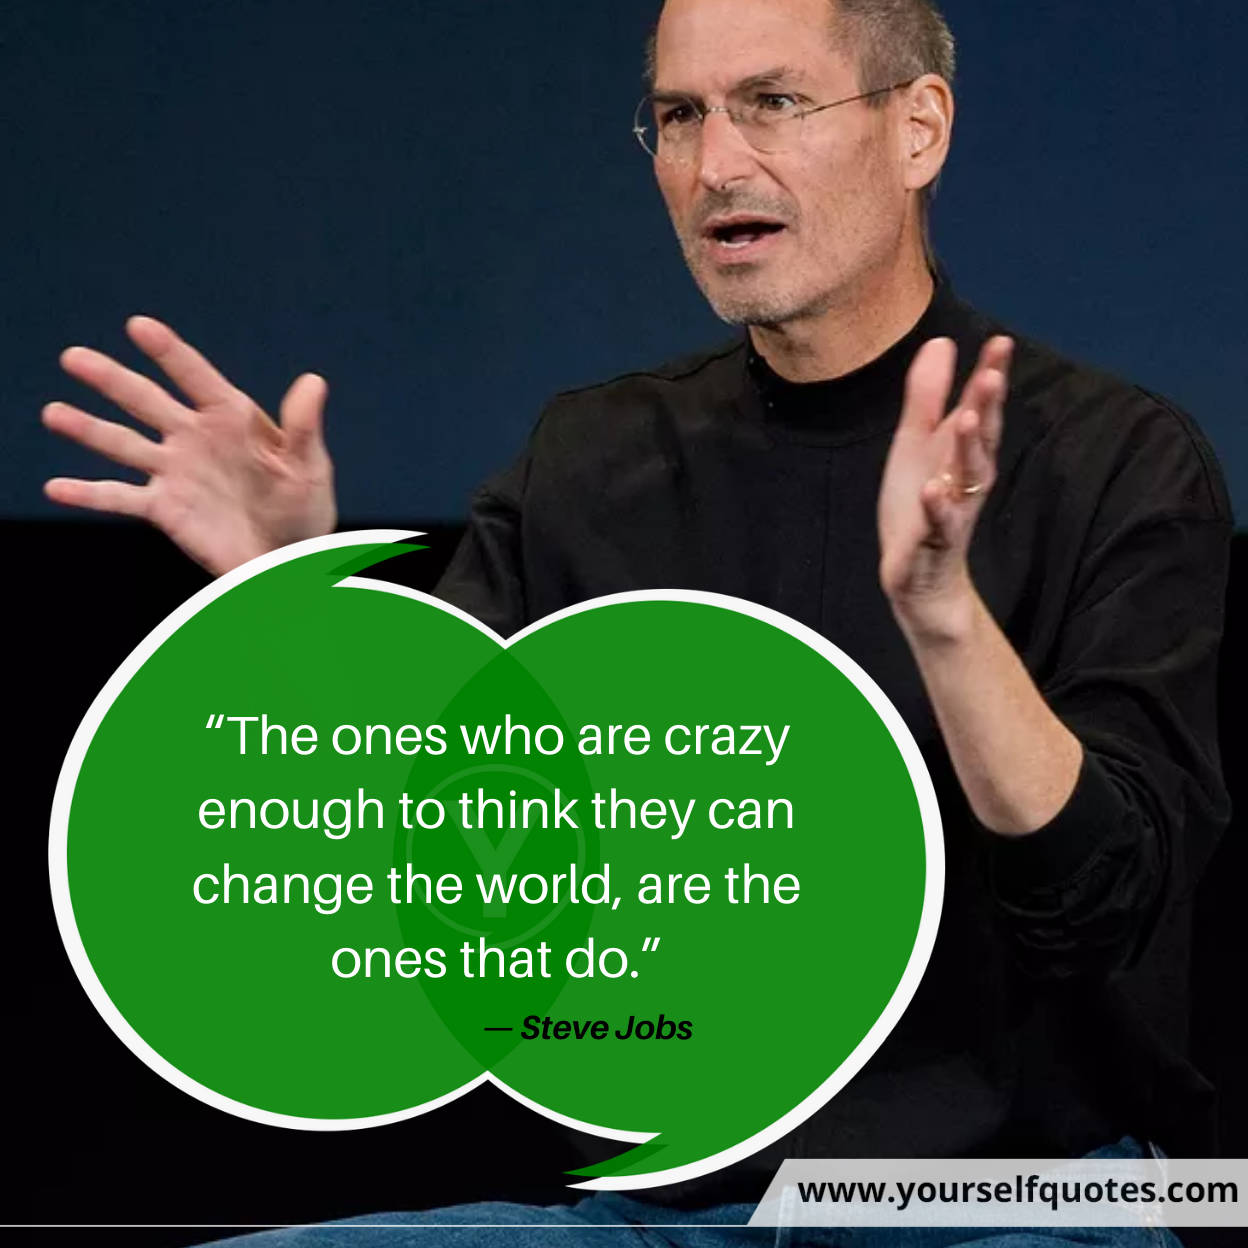 Steve Jobs Quotes About Change In Life